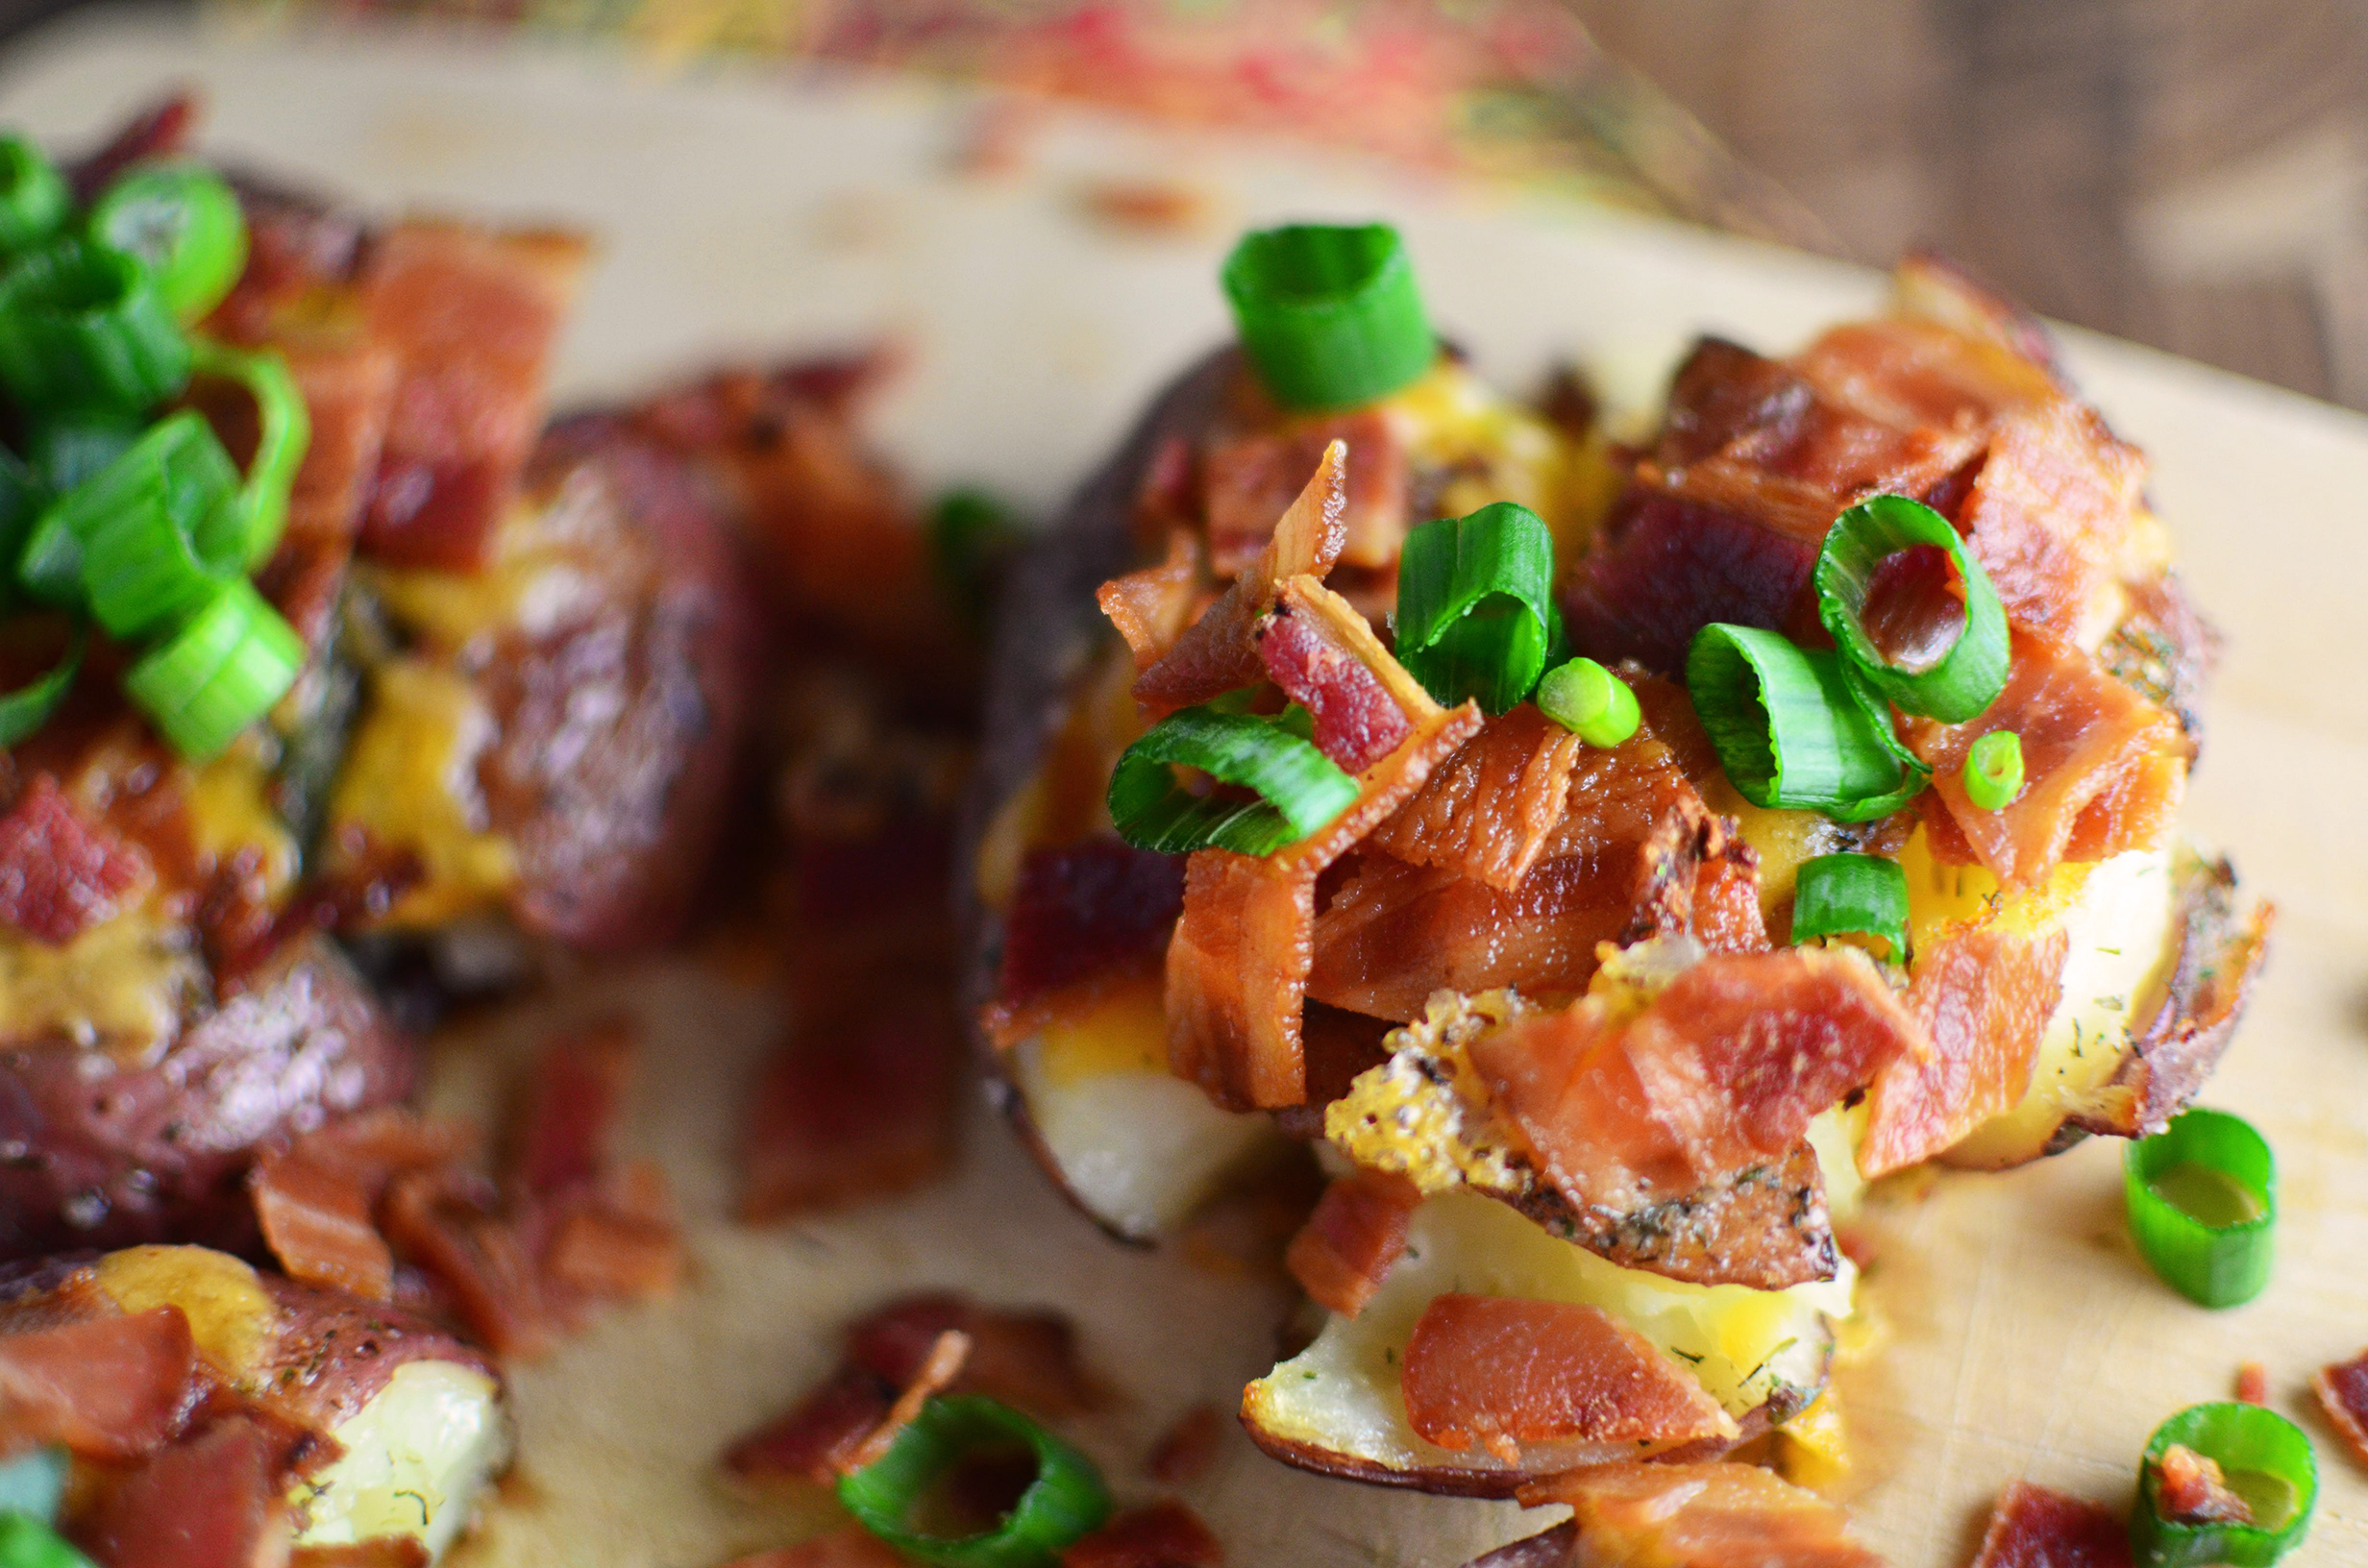 These Loaded Ranch Smashed Potatoes are topped with all the goodies ...